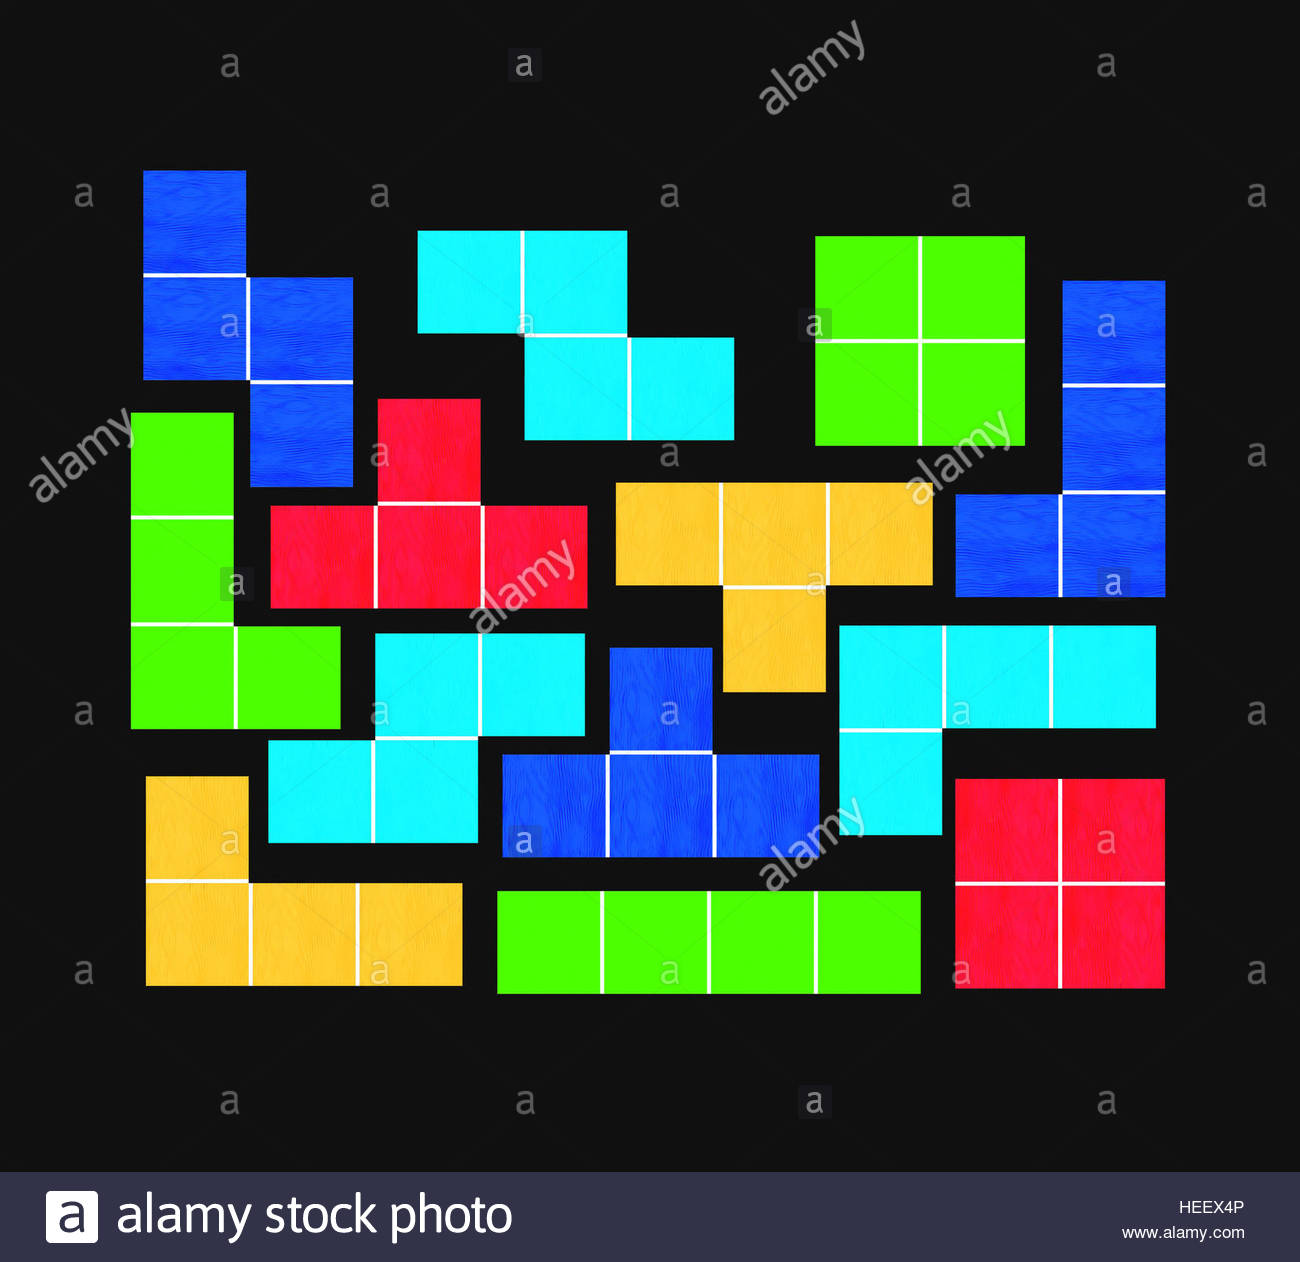 tetris game on black background   geometric shapes   puzzle game 1300x1262